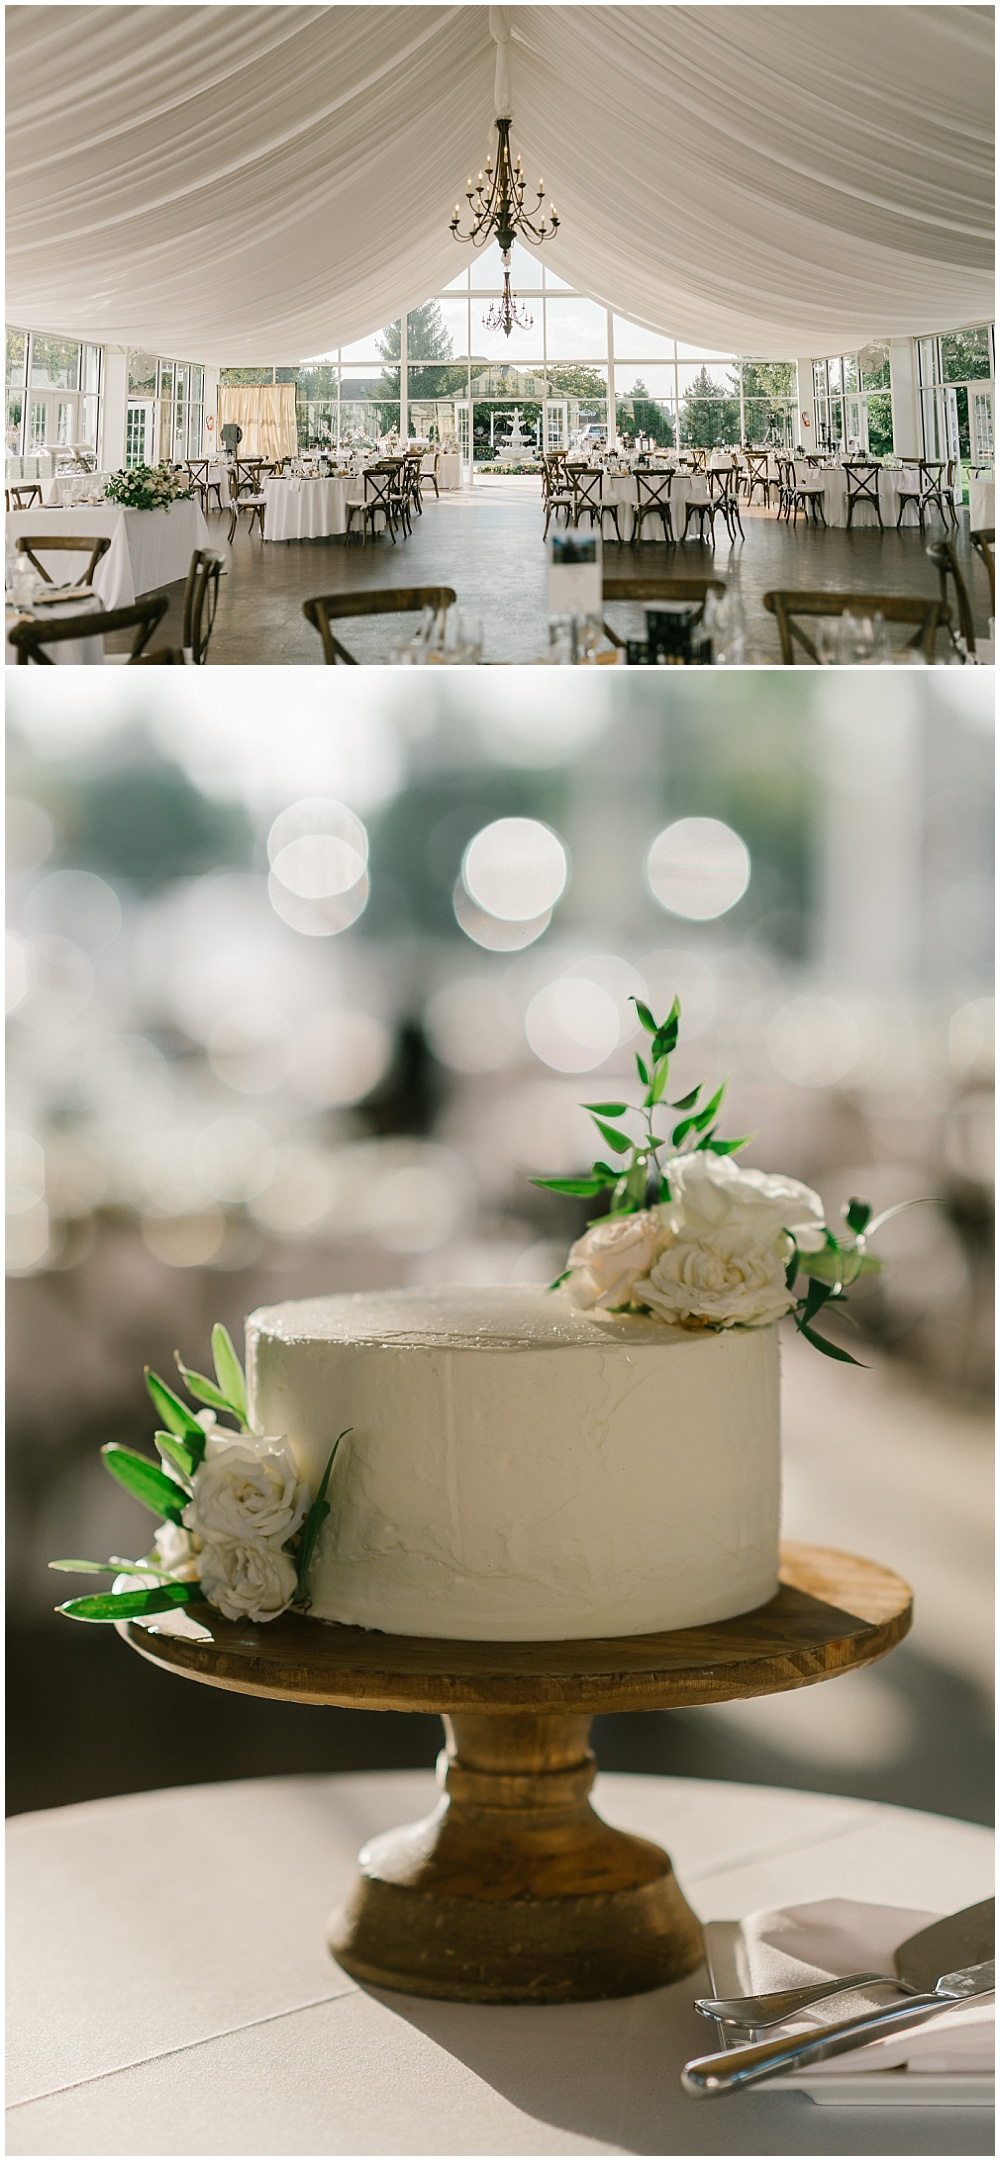 Small cutting cake with fresh flowers and a wooden pedestal cake stand Fall garden-inspired wedding at the Ritz Charles Garden Pavilion in Carmel, Indiana | Jessica Dum Wedding Coordination